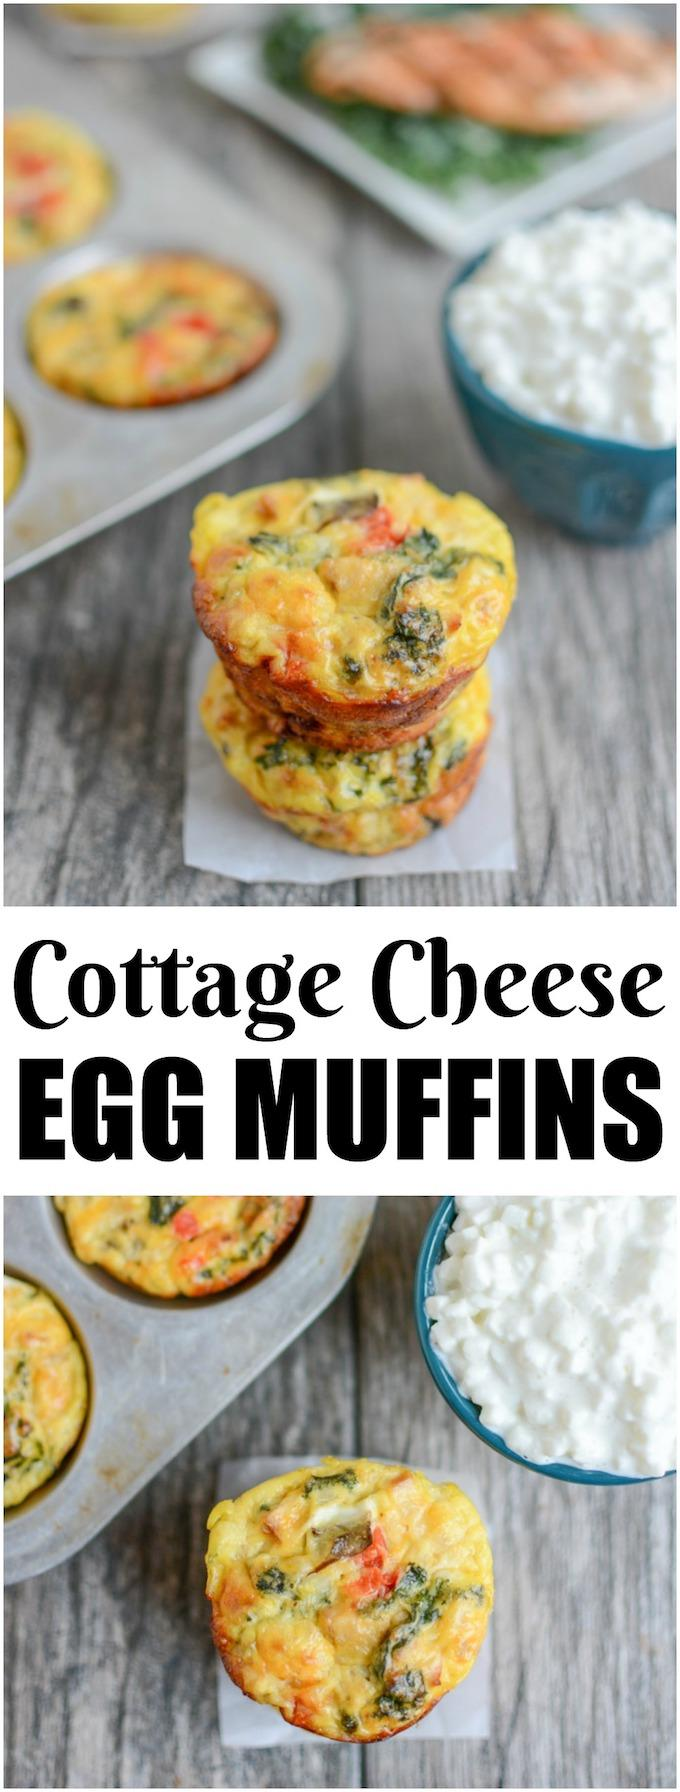 These Cottage Cheese Egg Muffins are a high-protein breakfast option that can be prepped ahead of time and eaten on the run! They're a fun change from traditional egg cups!